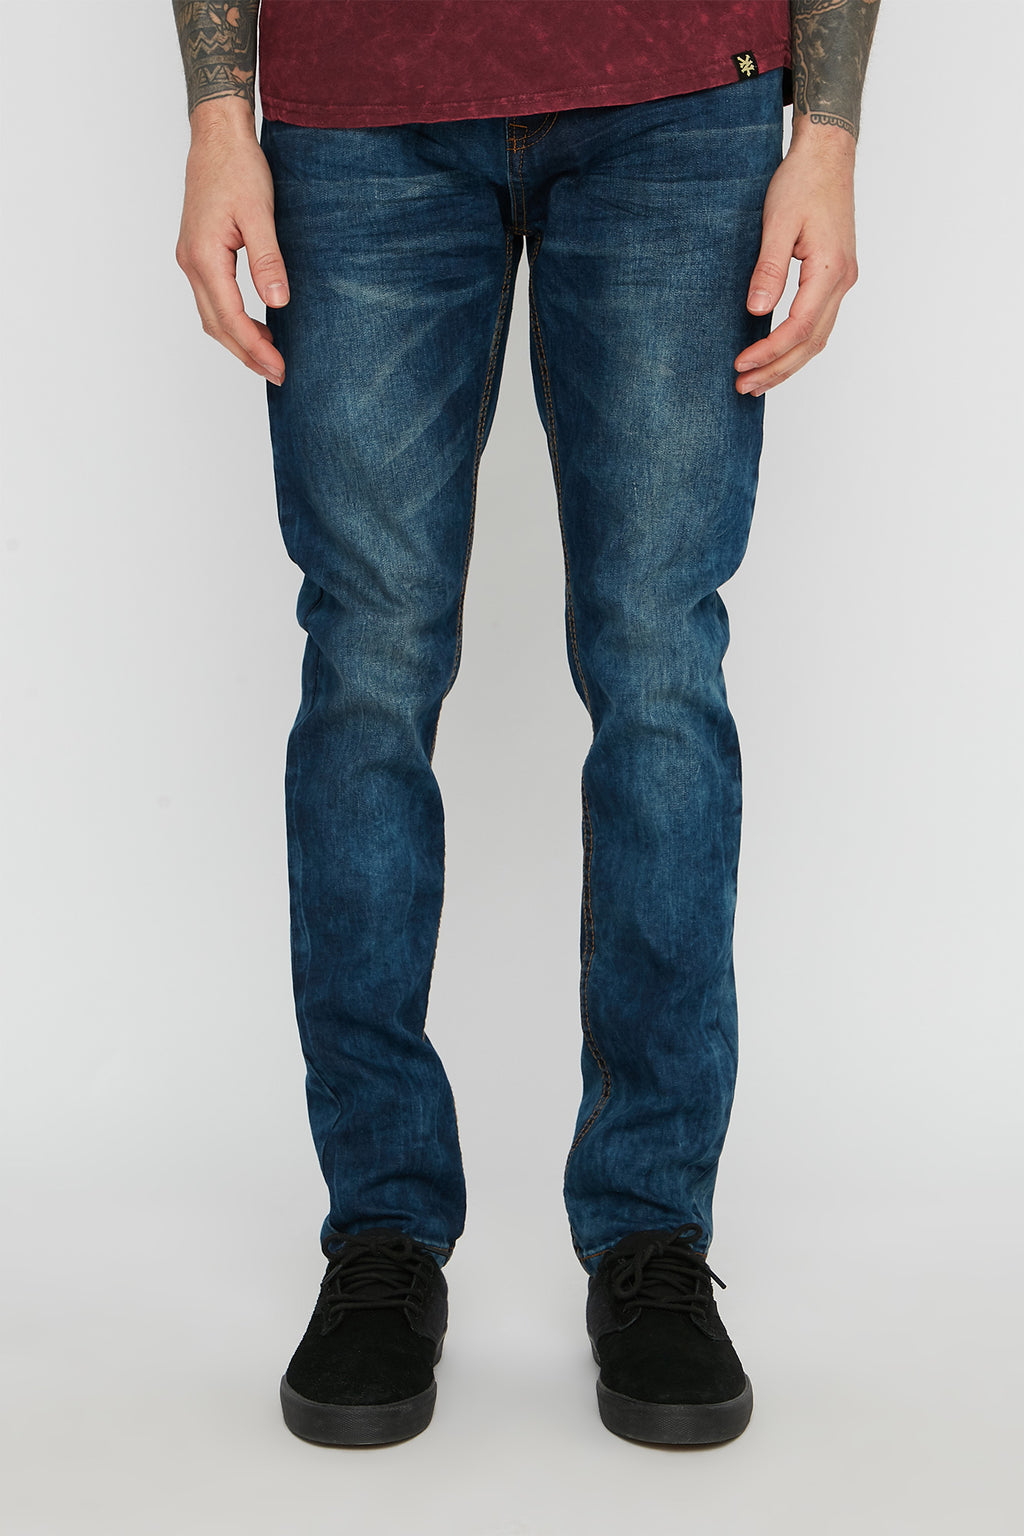 Zoo York Mens Dark Blue Skinny Jeans